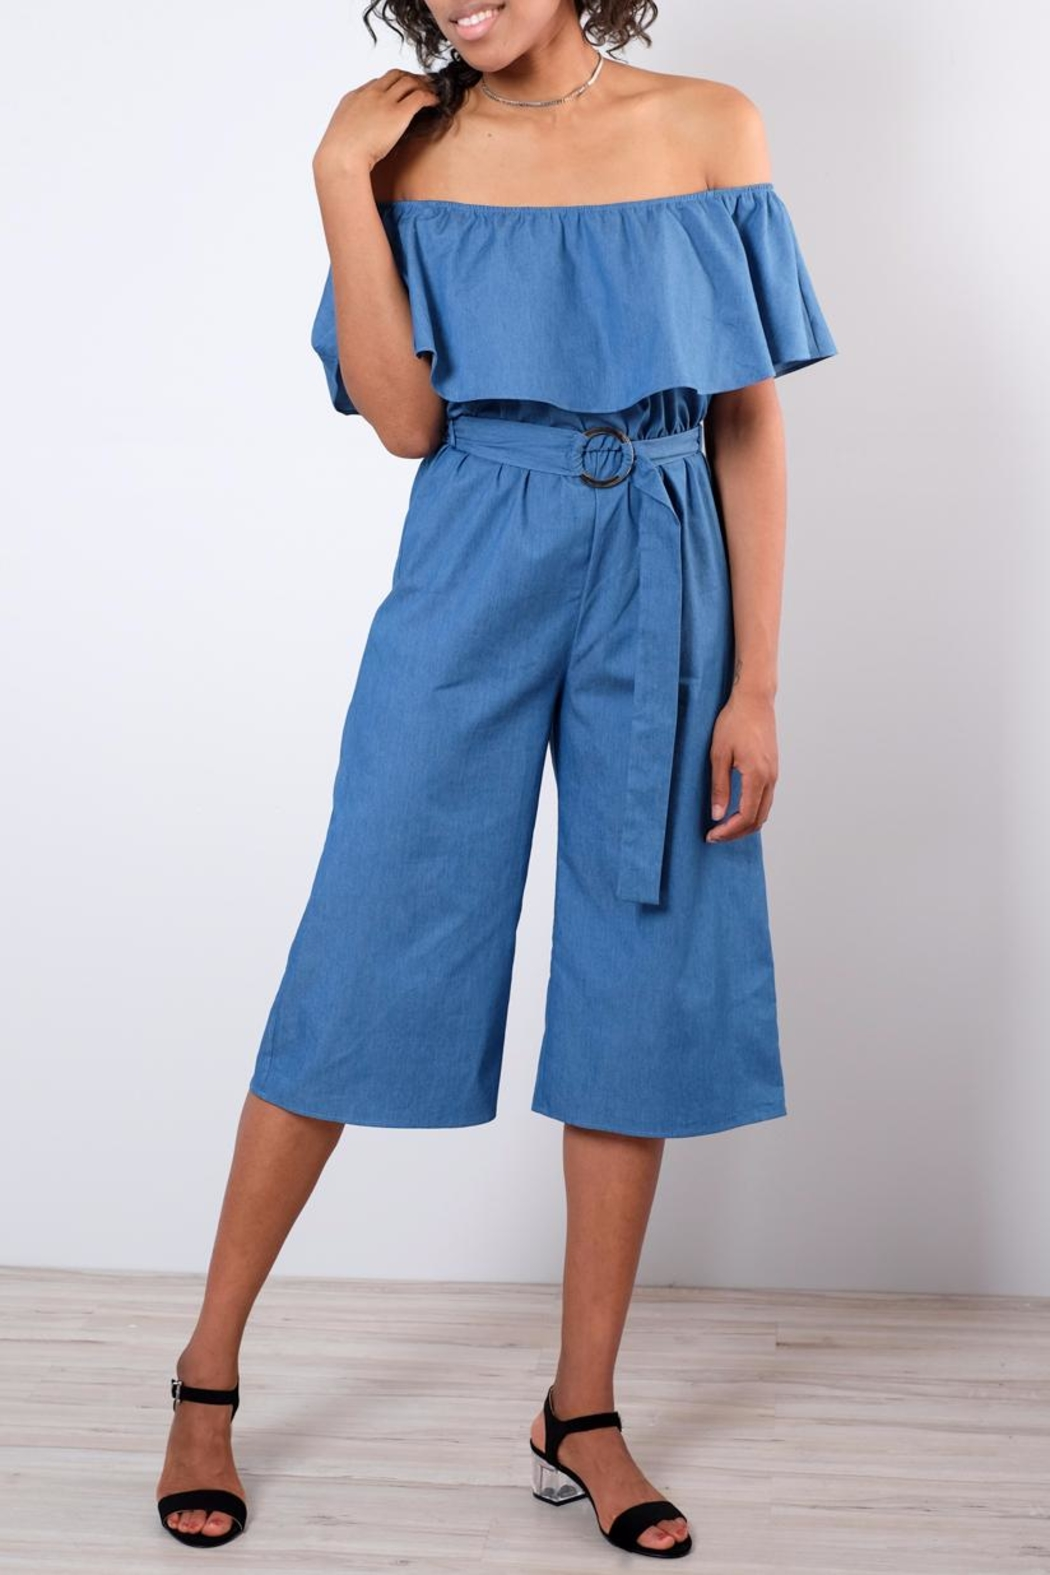 Everly Chambray Jumpsuit - Main Image